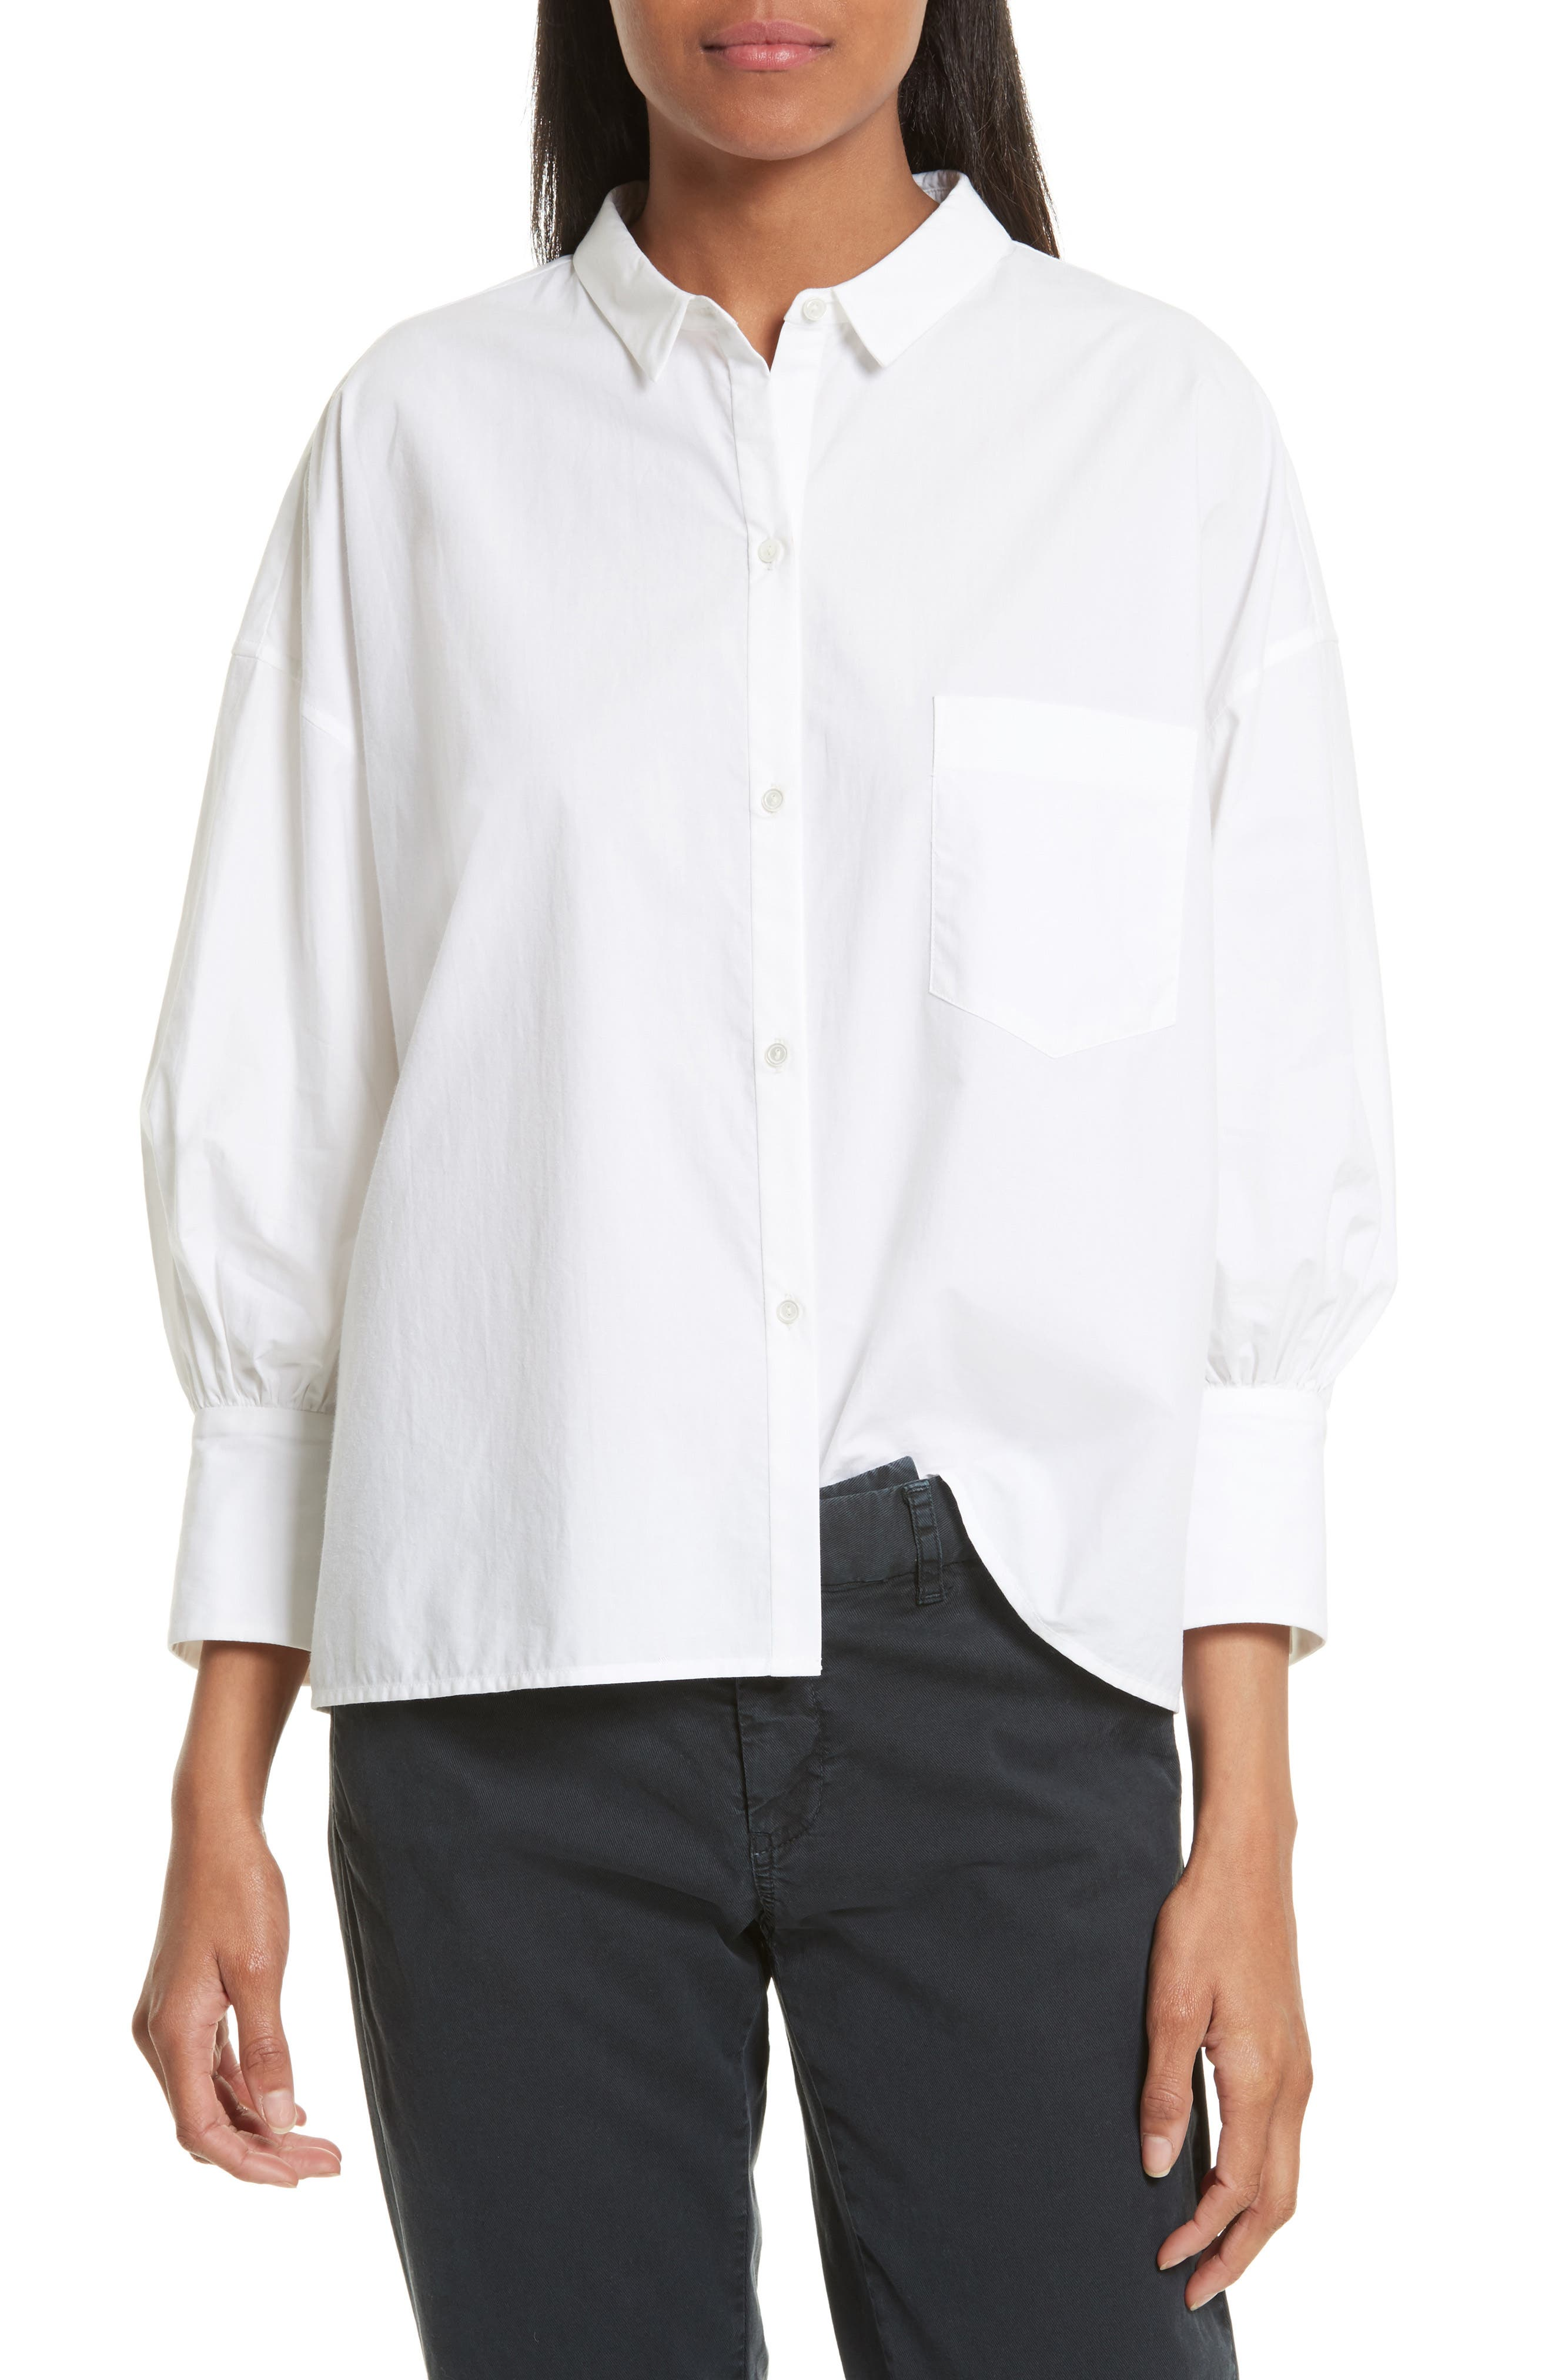 Alternate Image 1 Selected - Nili Lotan Filmore Gathered Cotton Poplin Top